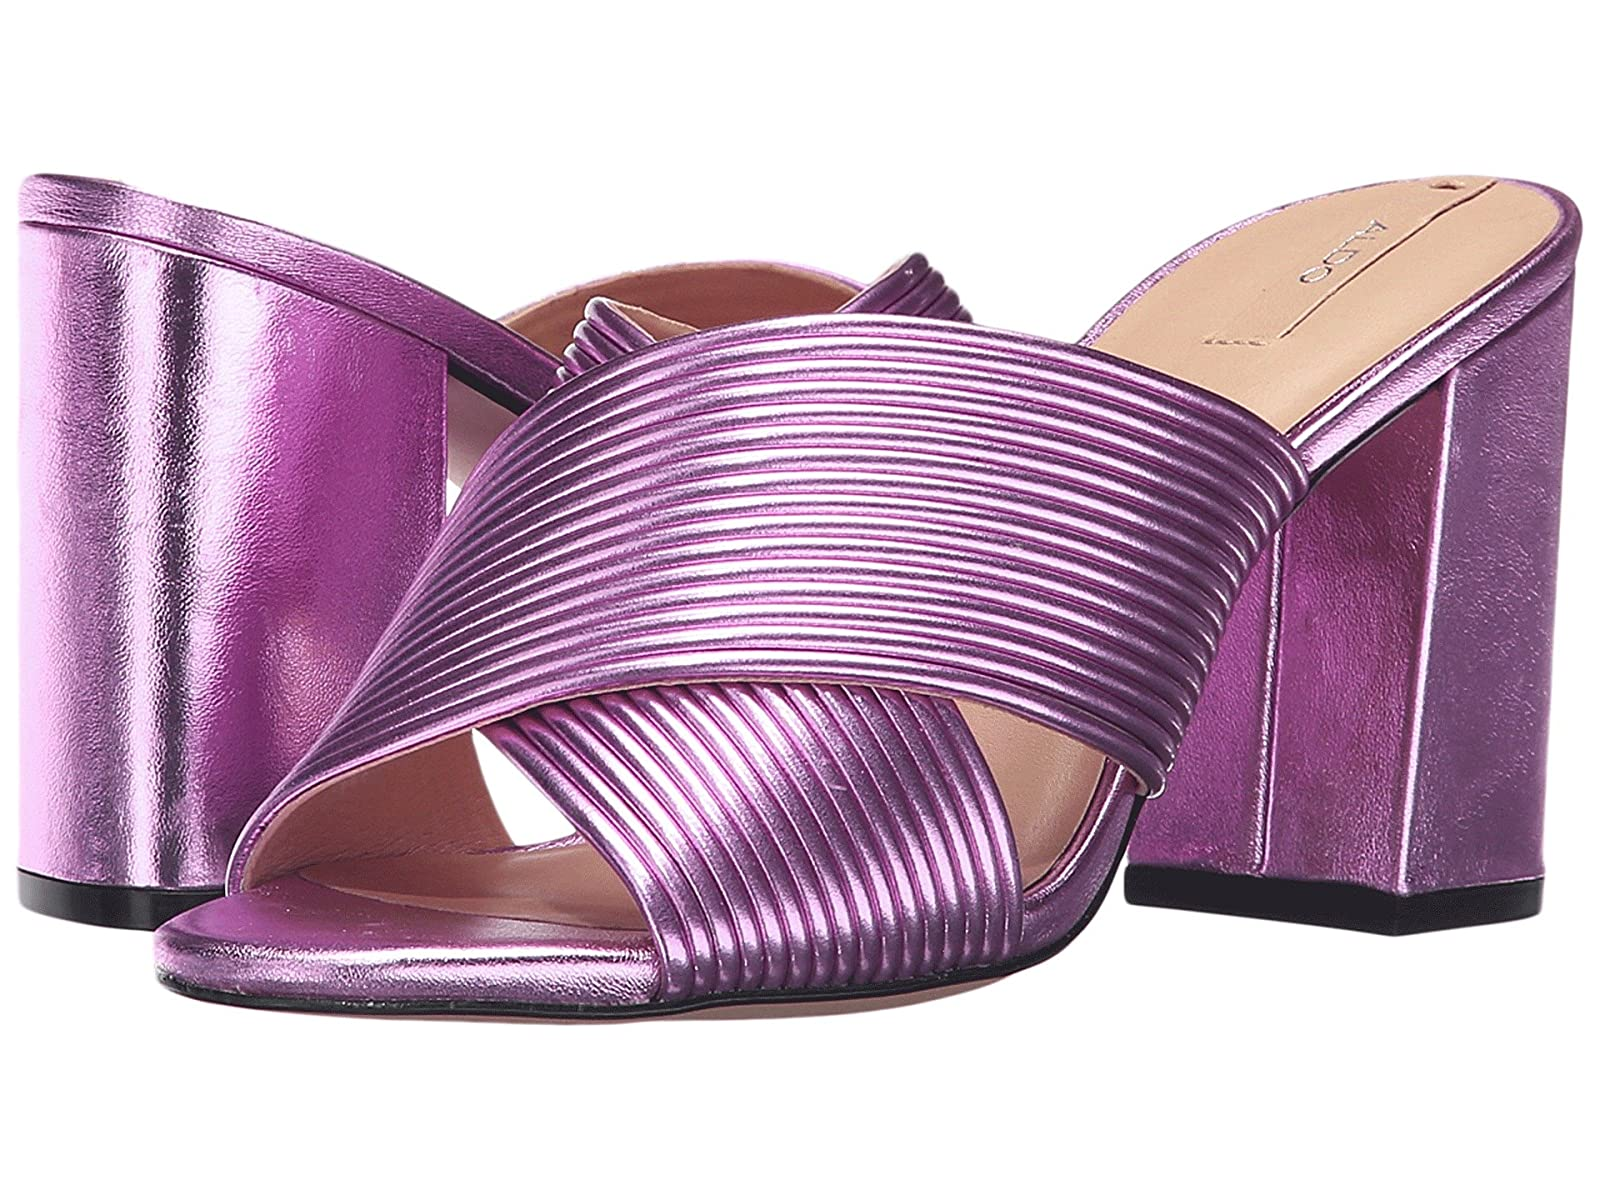 ALDO OlaniCheap and distinctive eye-catching shoes